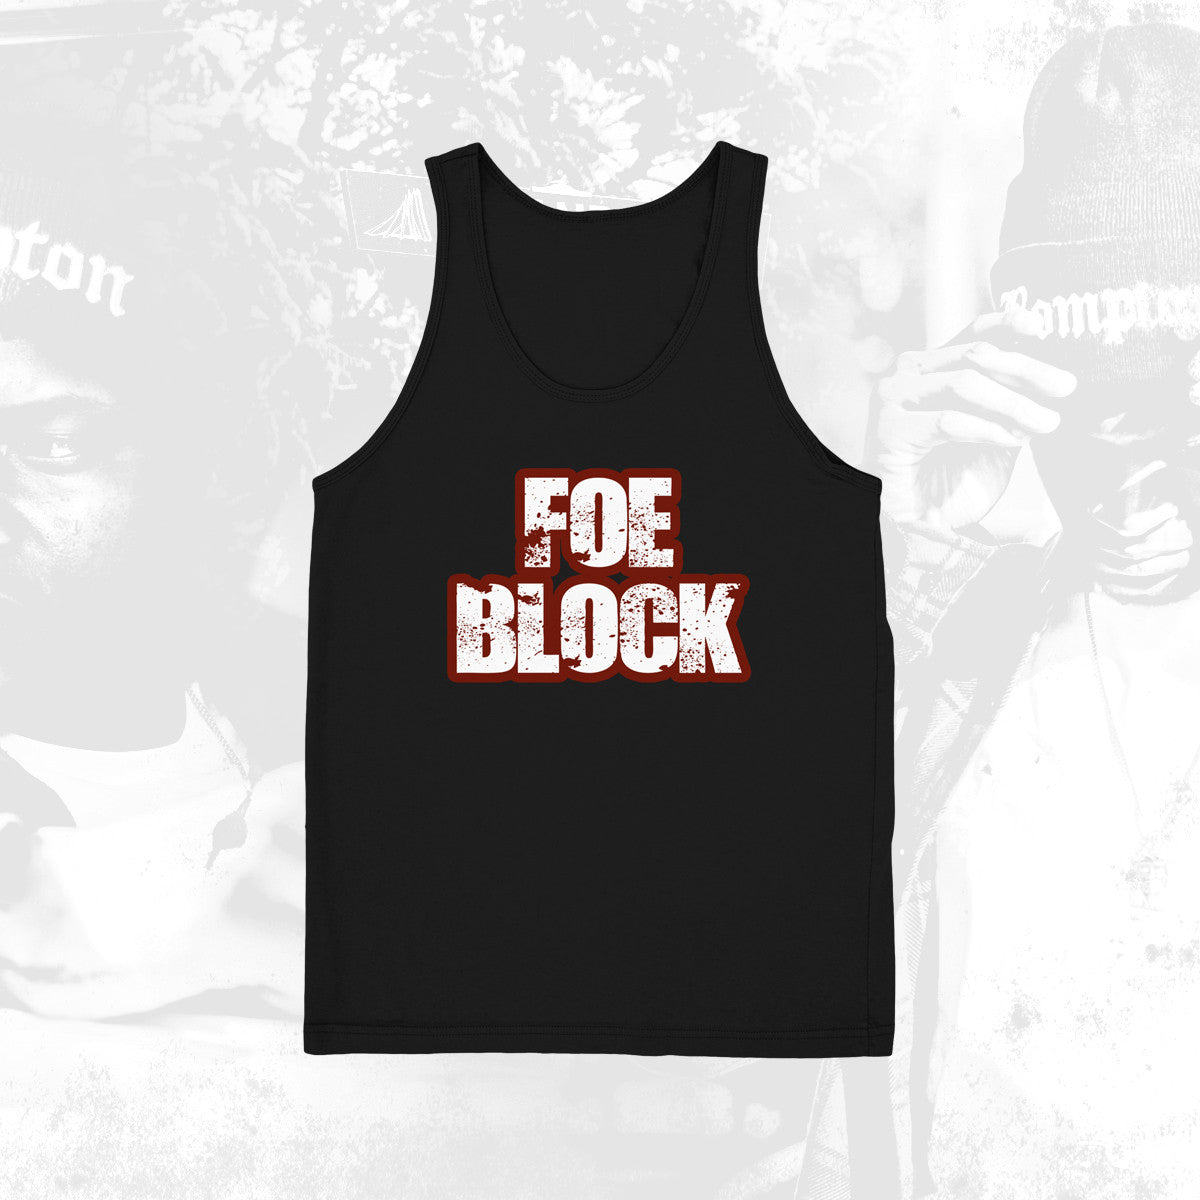 Foe Block Black Tank